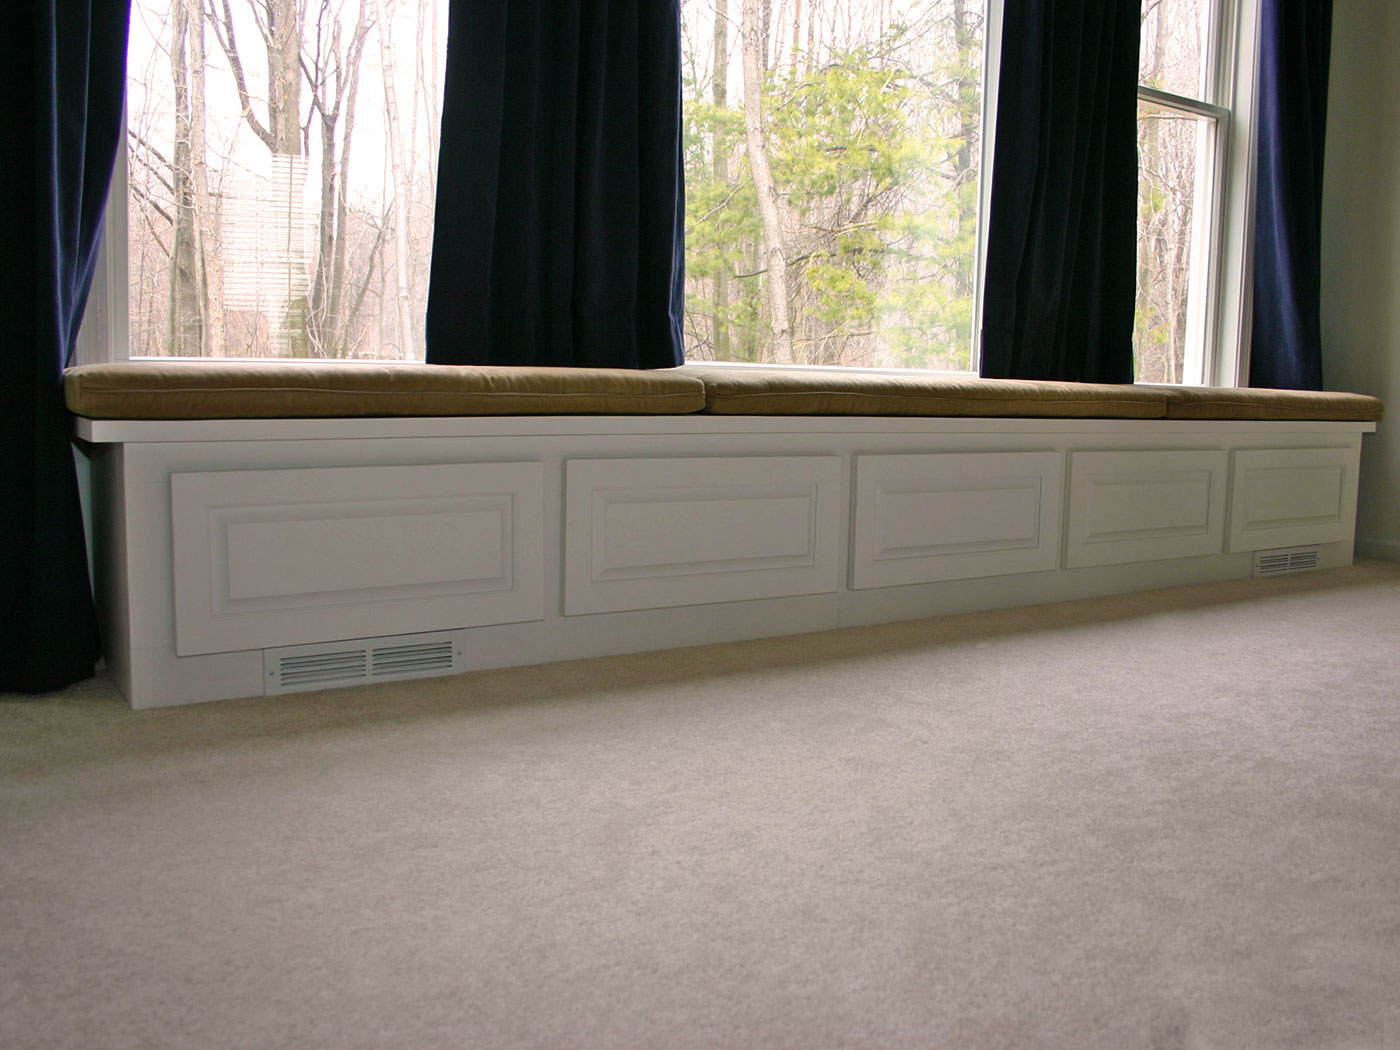 Built-in Window Bench - Craftworks Custom Cabinetry - Rochester, NY